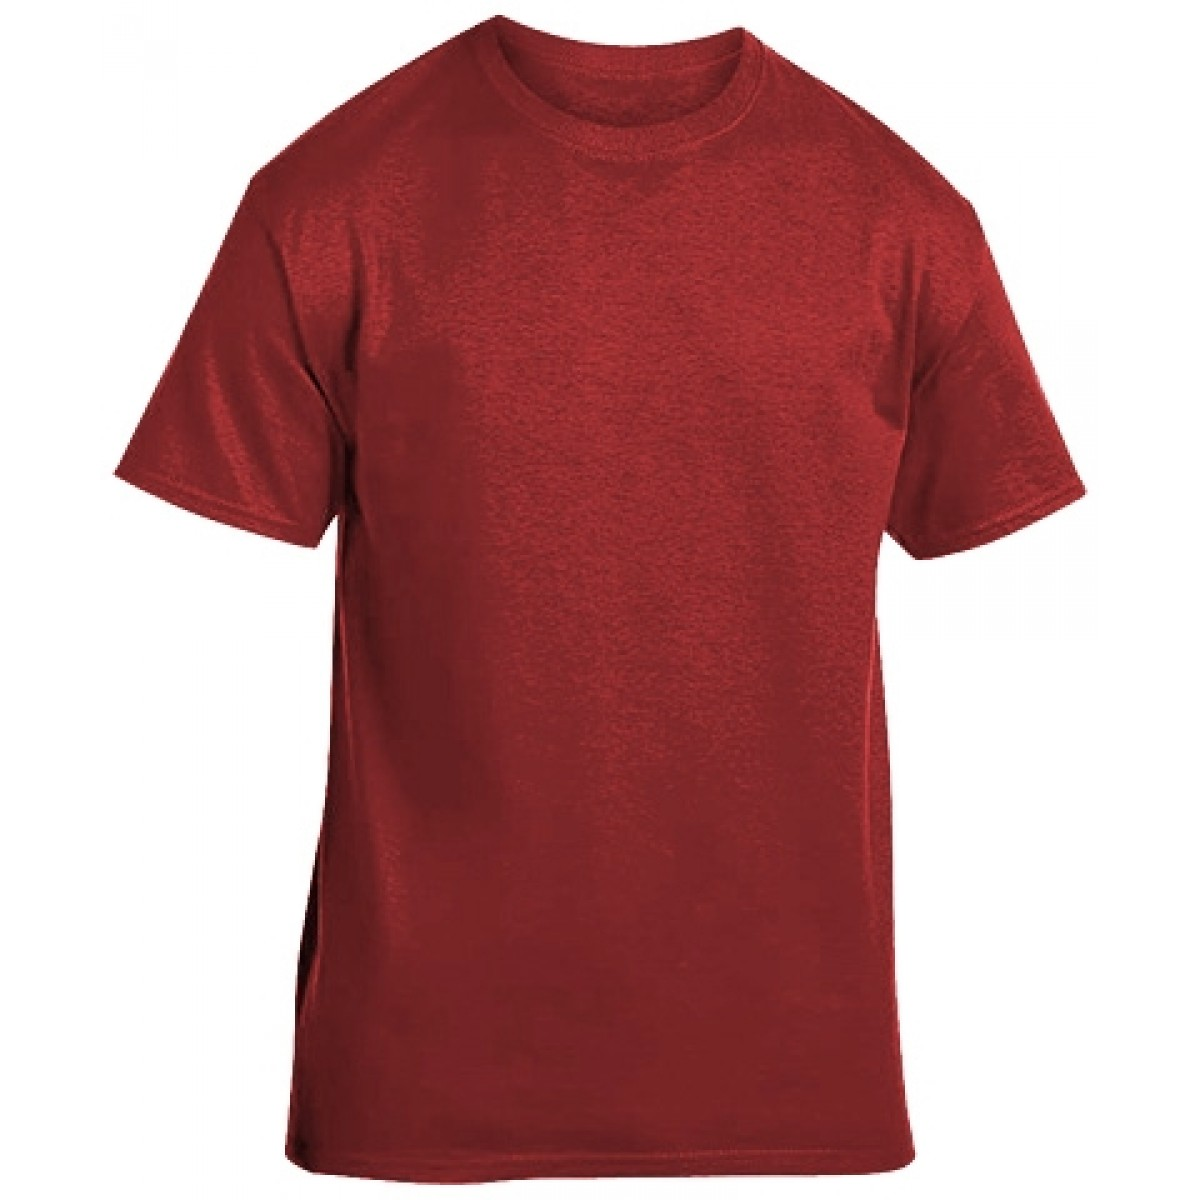 Soft 100% Cotton T-Shirt-Heathered Red-S